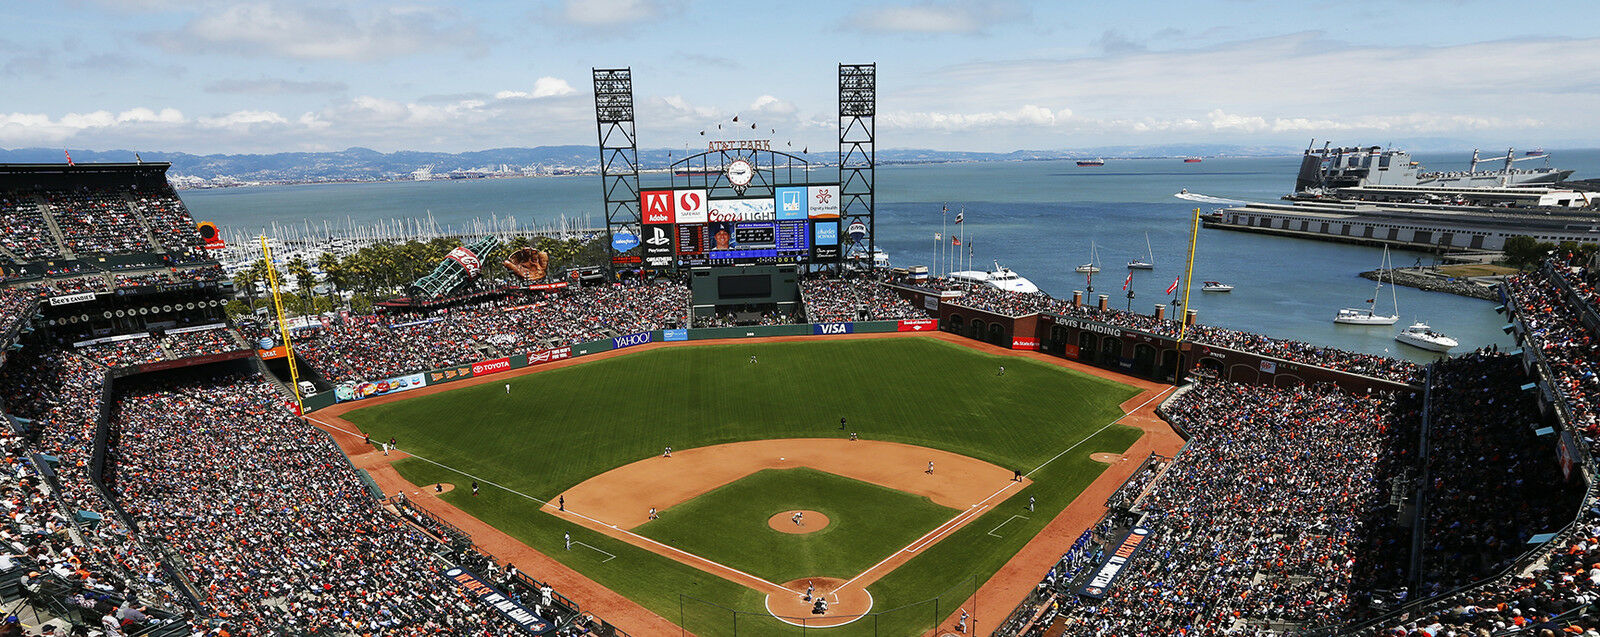 Oakland Athletics at San Francisco Giants Tickets (Exhibition)